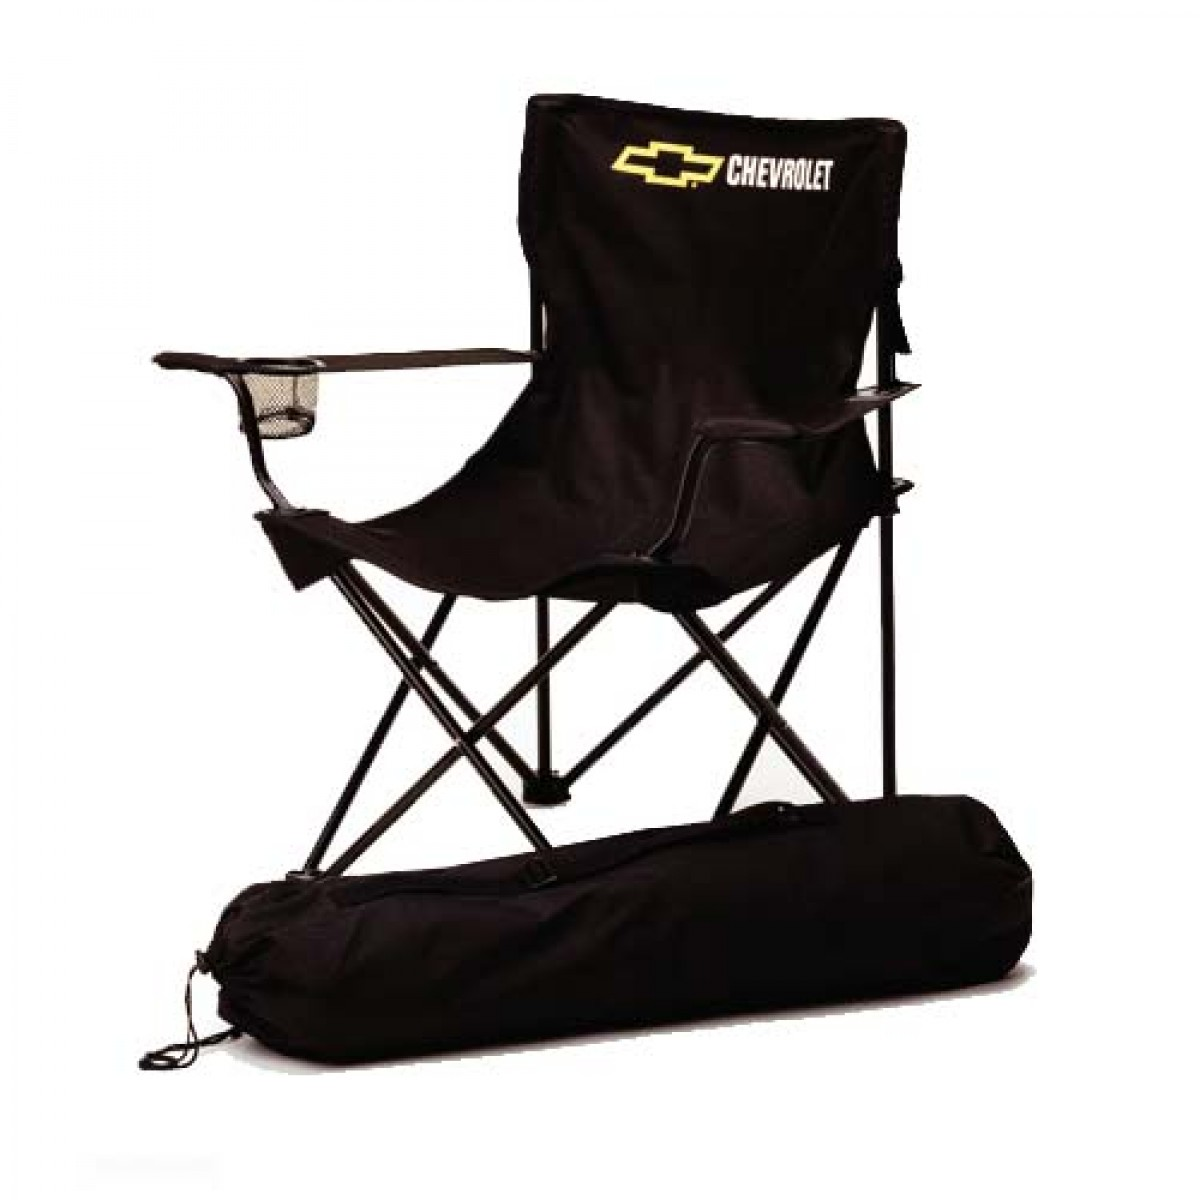 Travel Chair Hossrods Chevrolet Quoteasy Rider Quot Travel Chair Hot